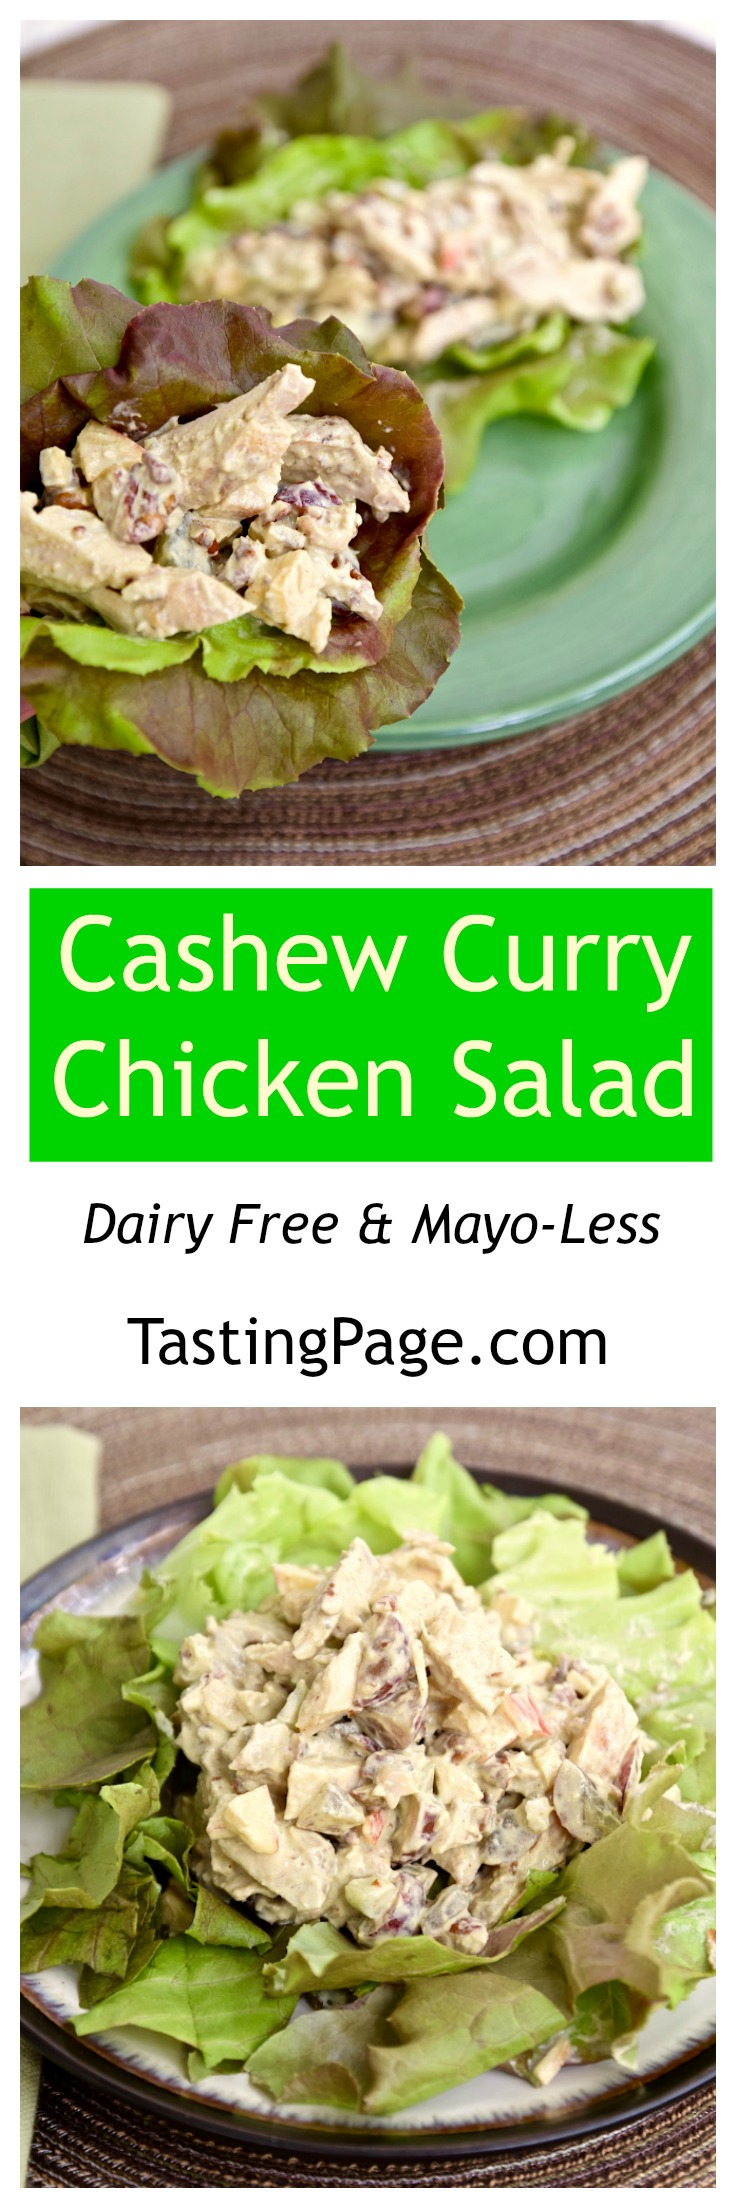 Mayo-less Dairy Free Cashew Curry Chicken Salad | TastingPage.com